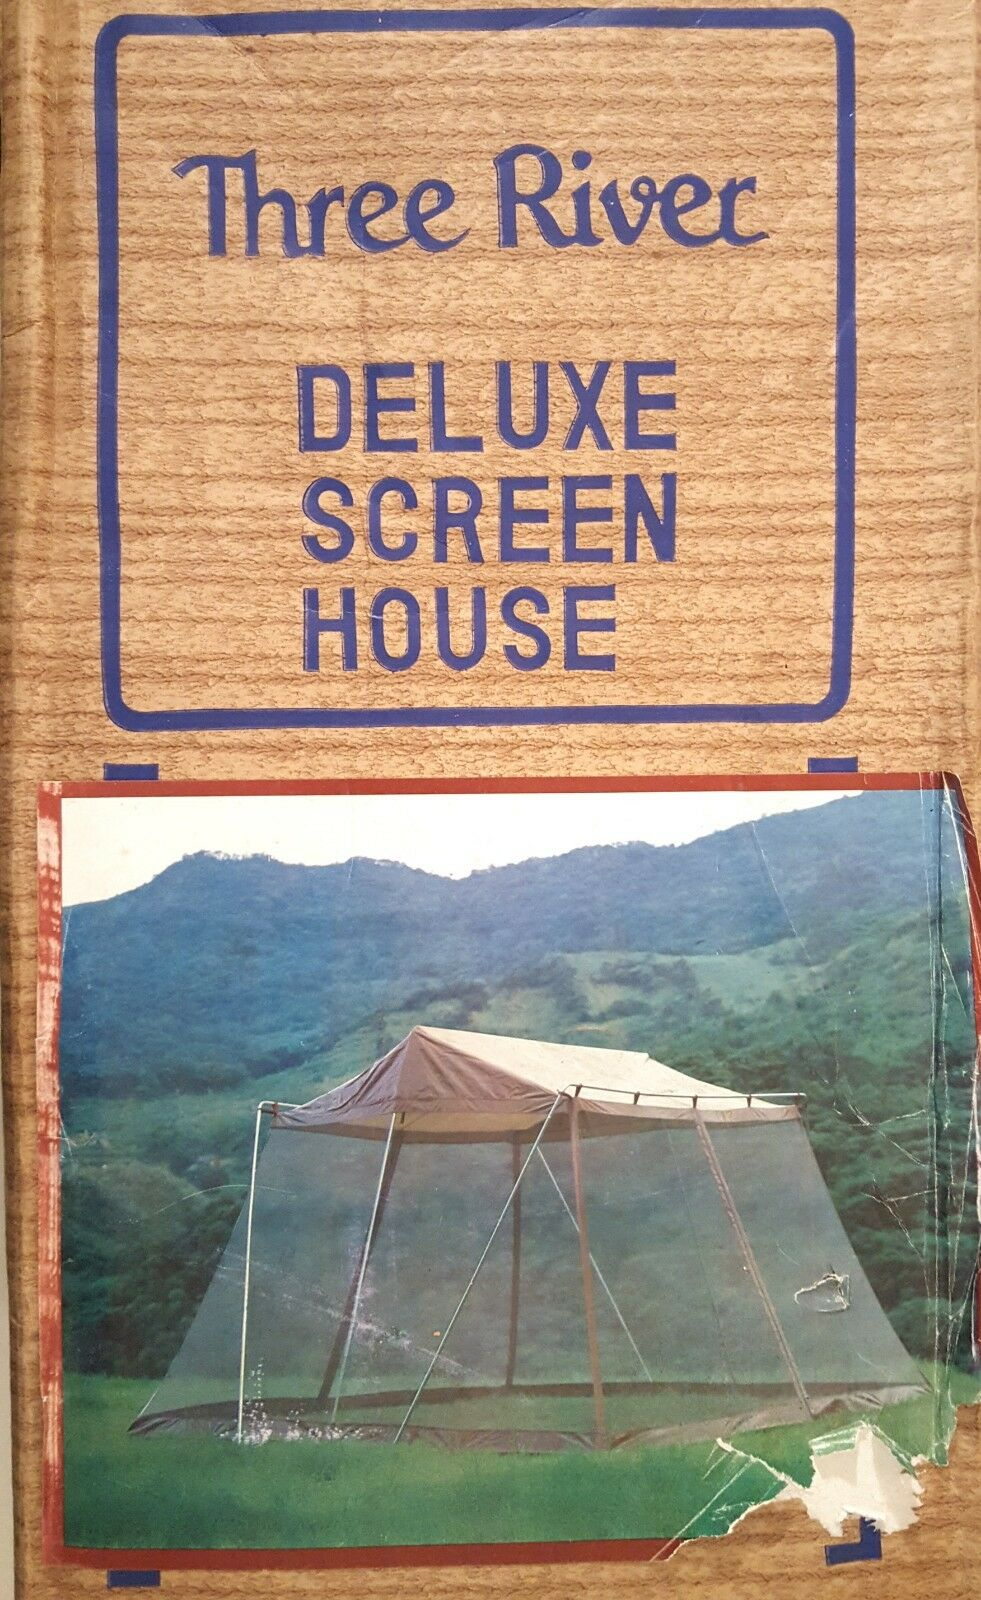 THREE RIVER SCREEN  HOUSE 12x12 OUTDOOR TENT CANOPY 1980s VINTAGE CAMPING NOS  on sale 70% off